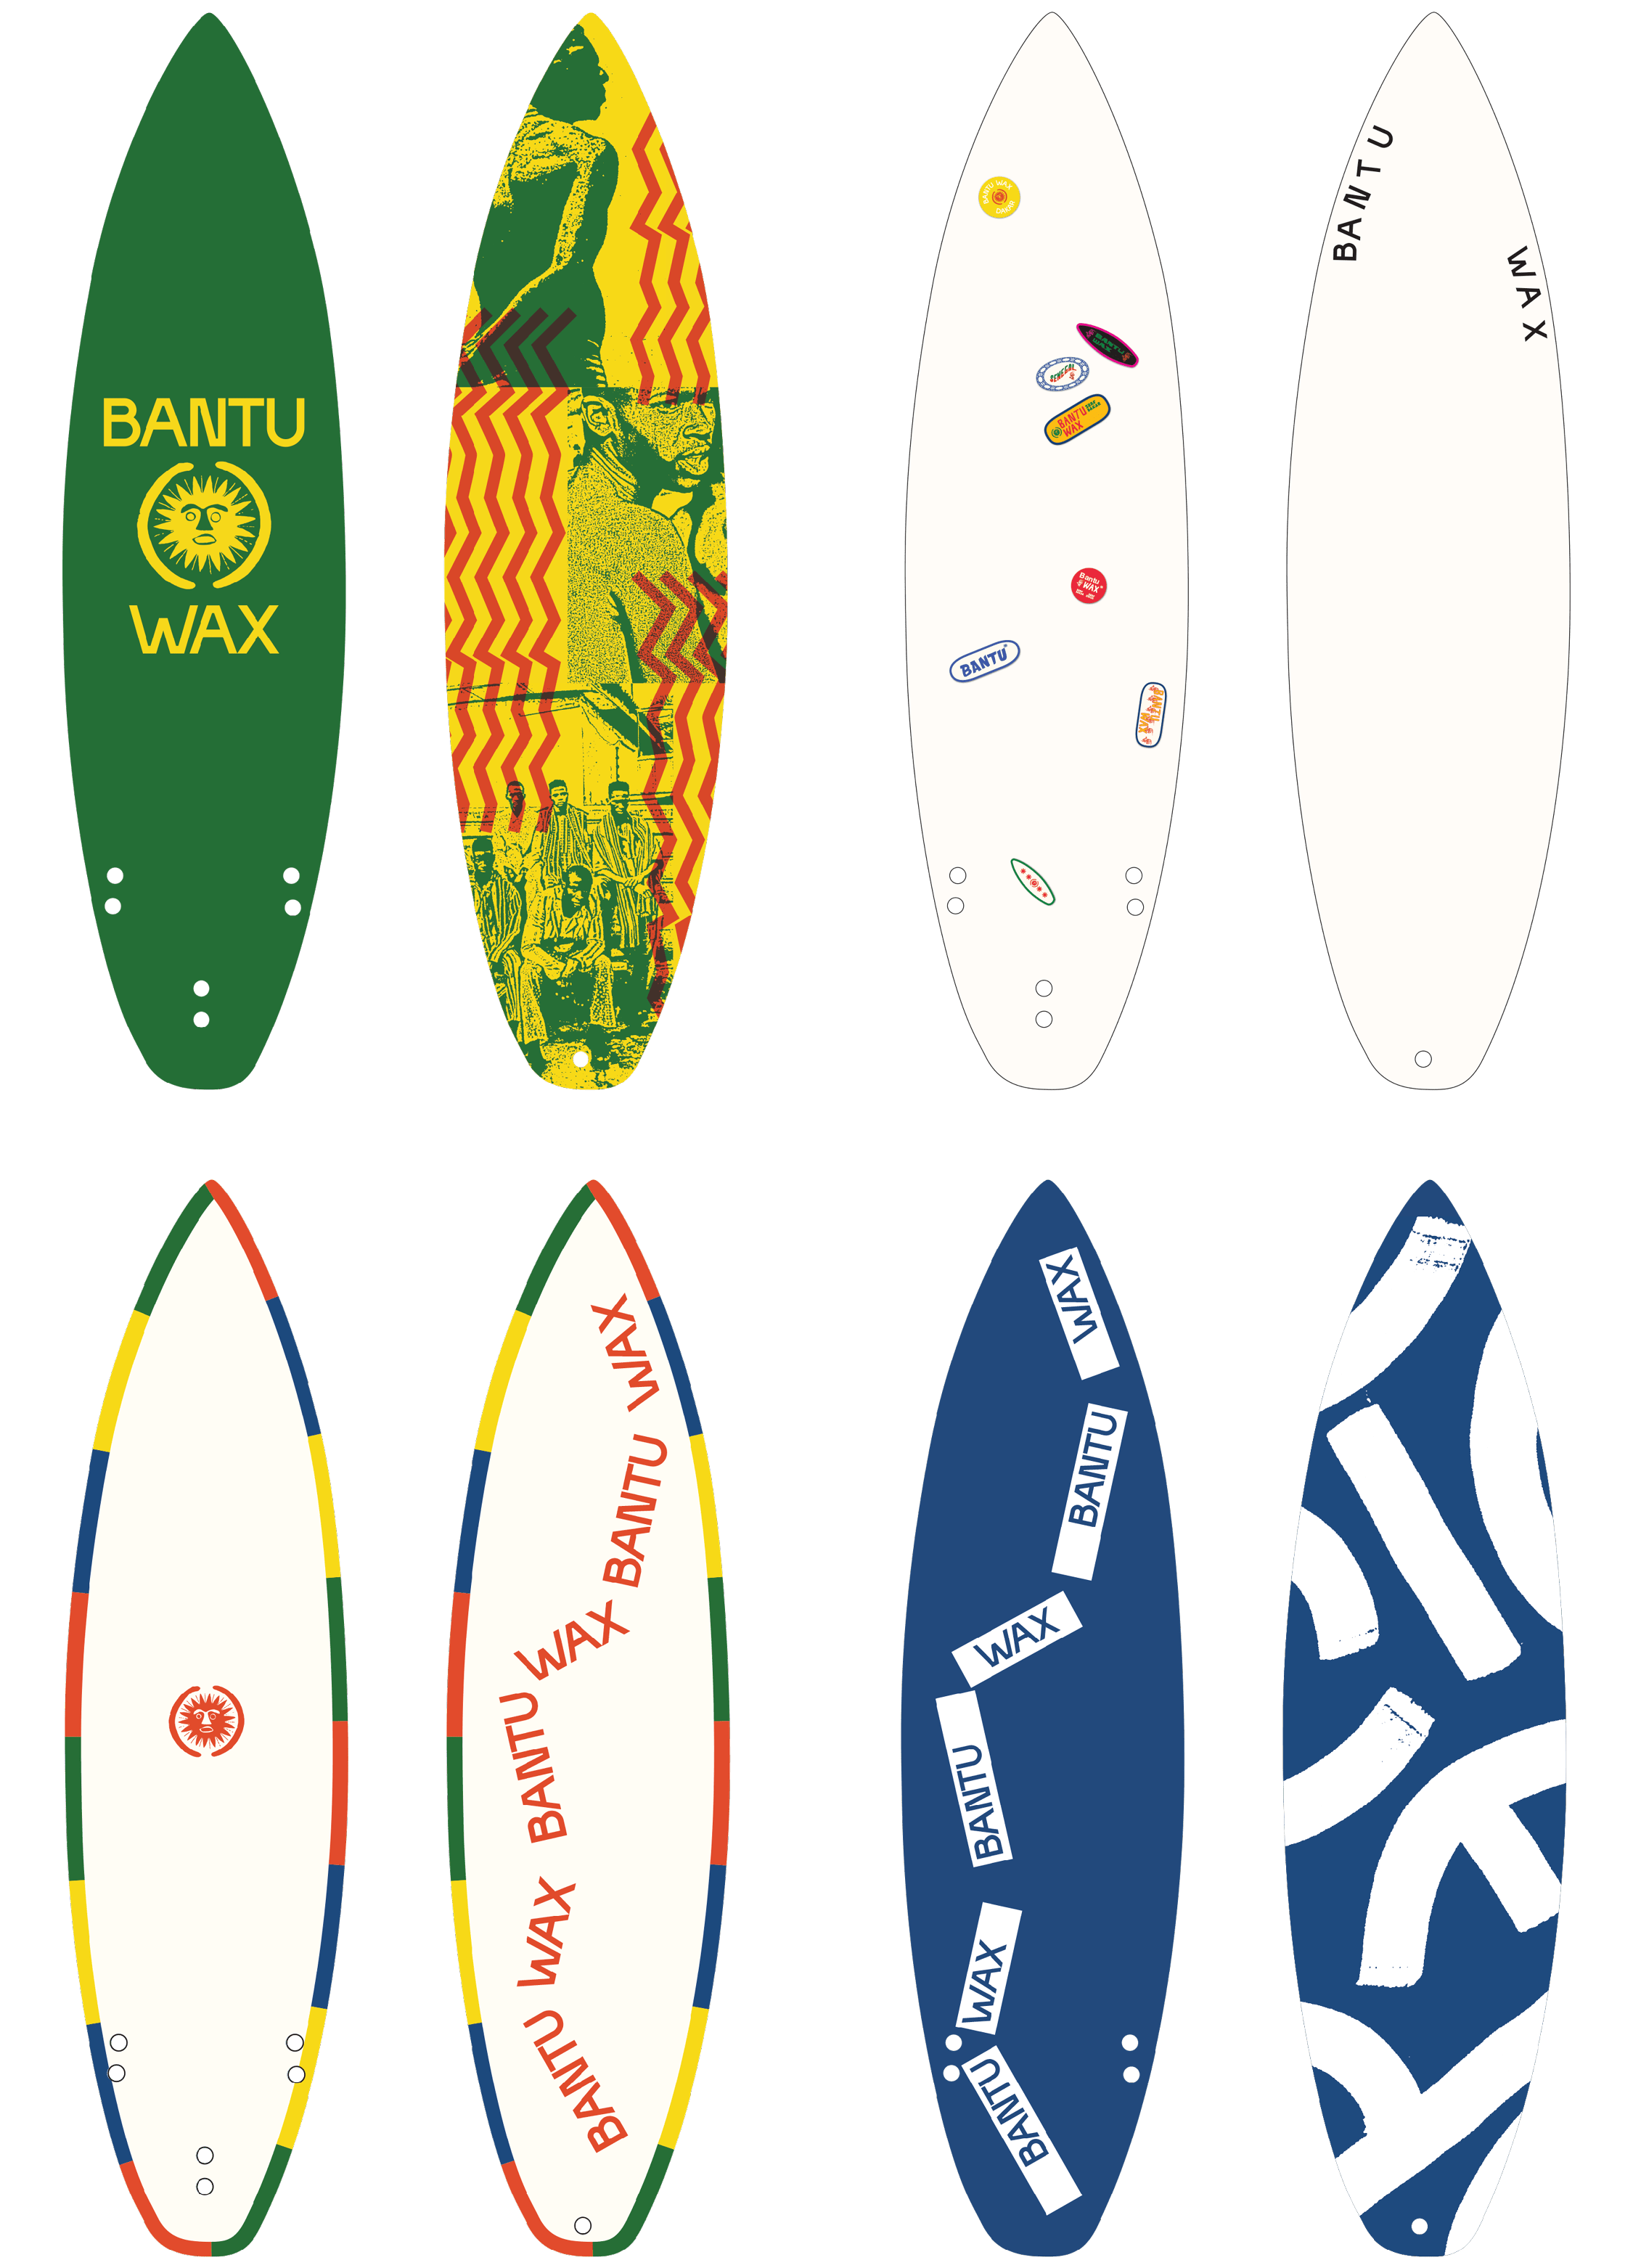 Bantu Wax surfboards